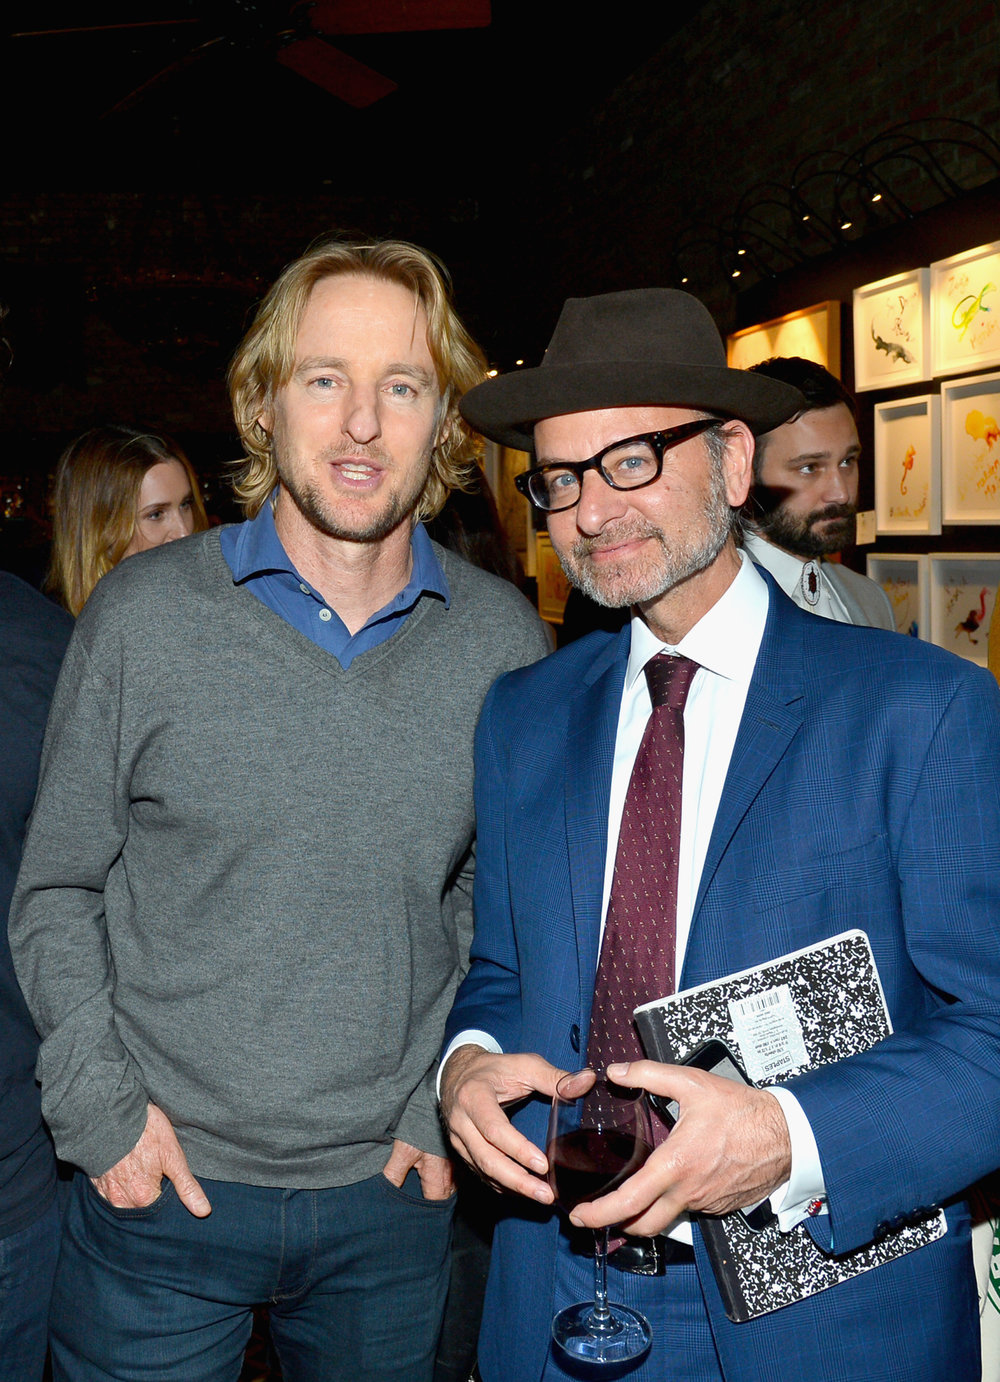 Owen Wilson and Fisher Stevens